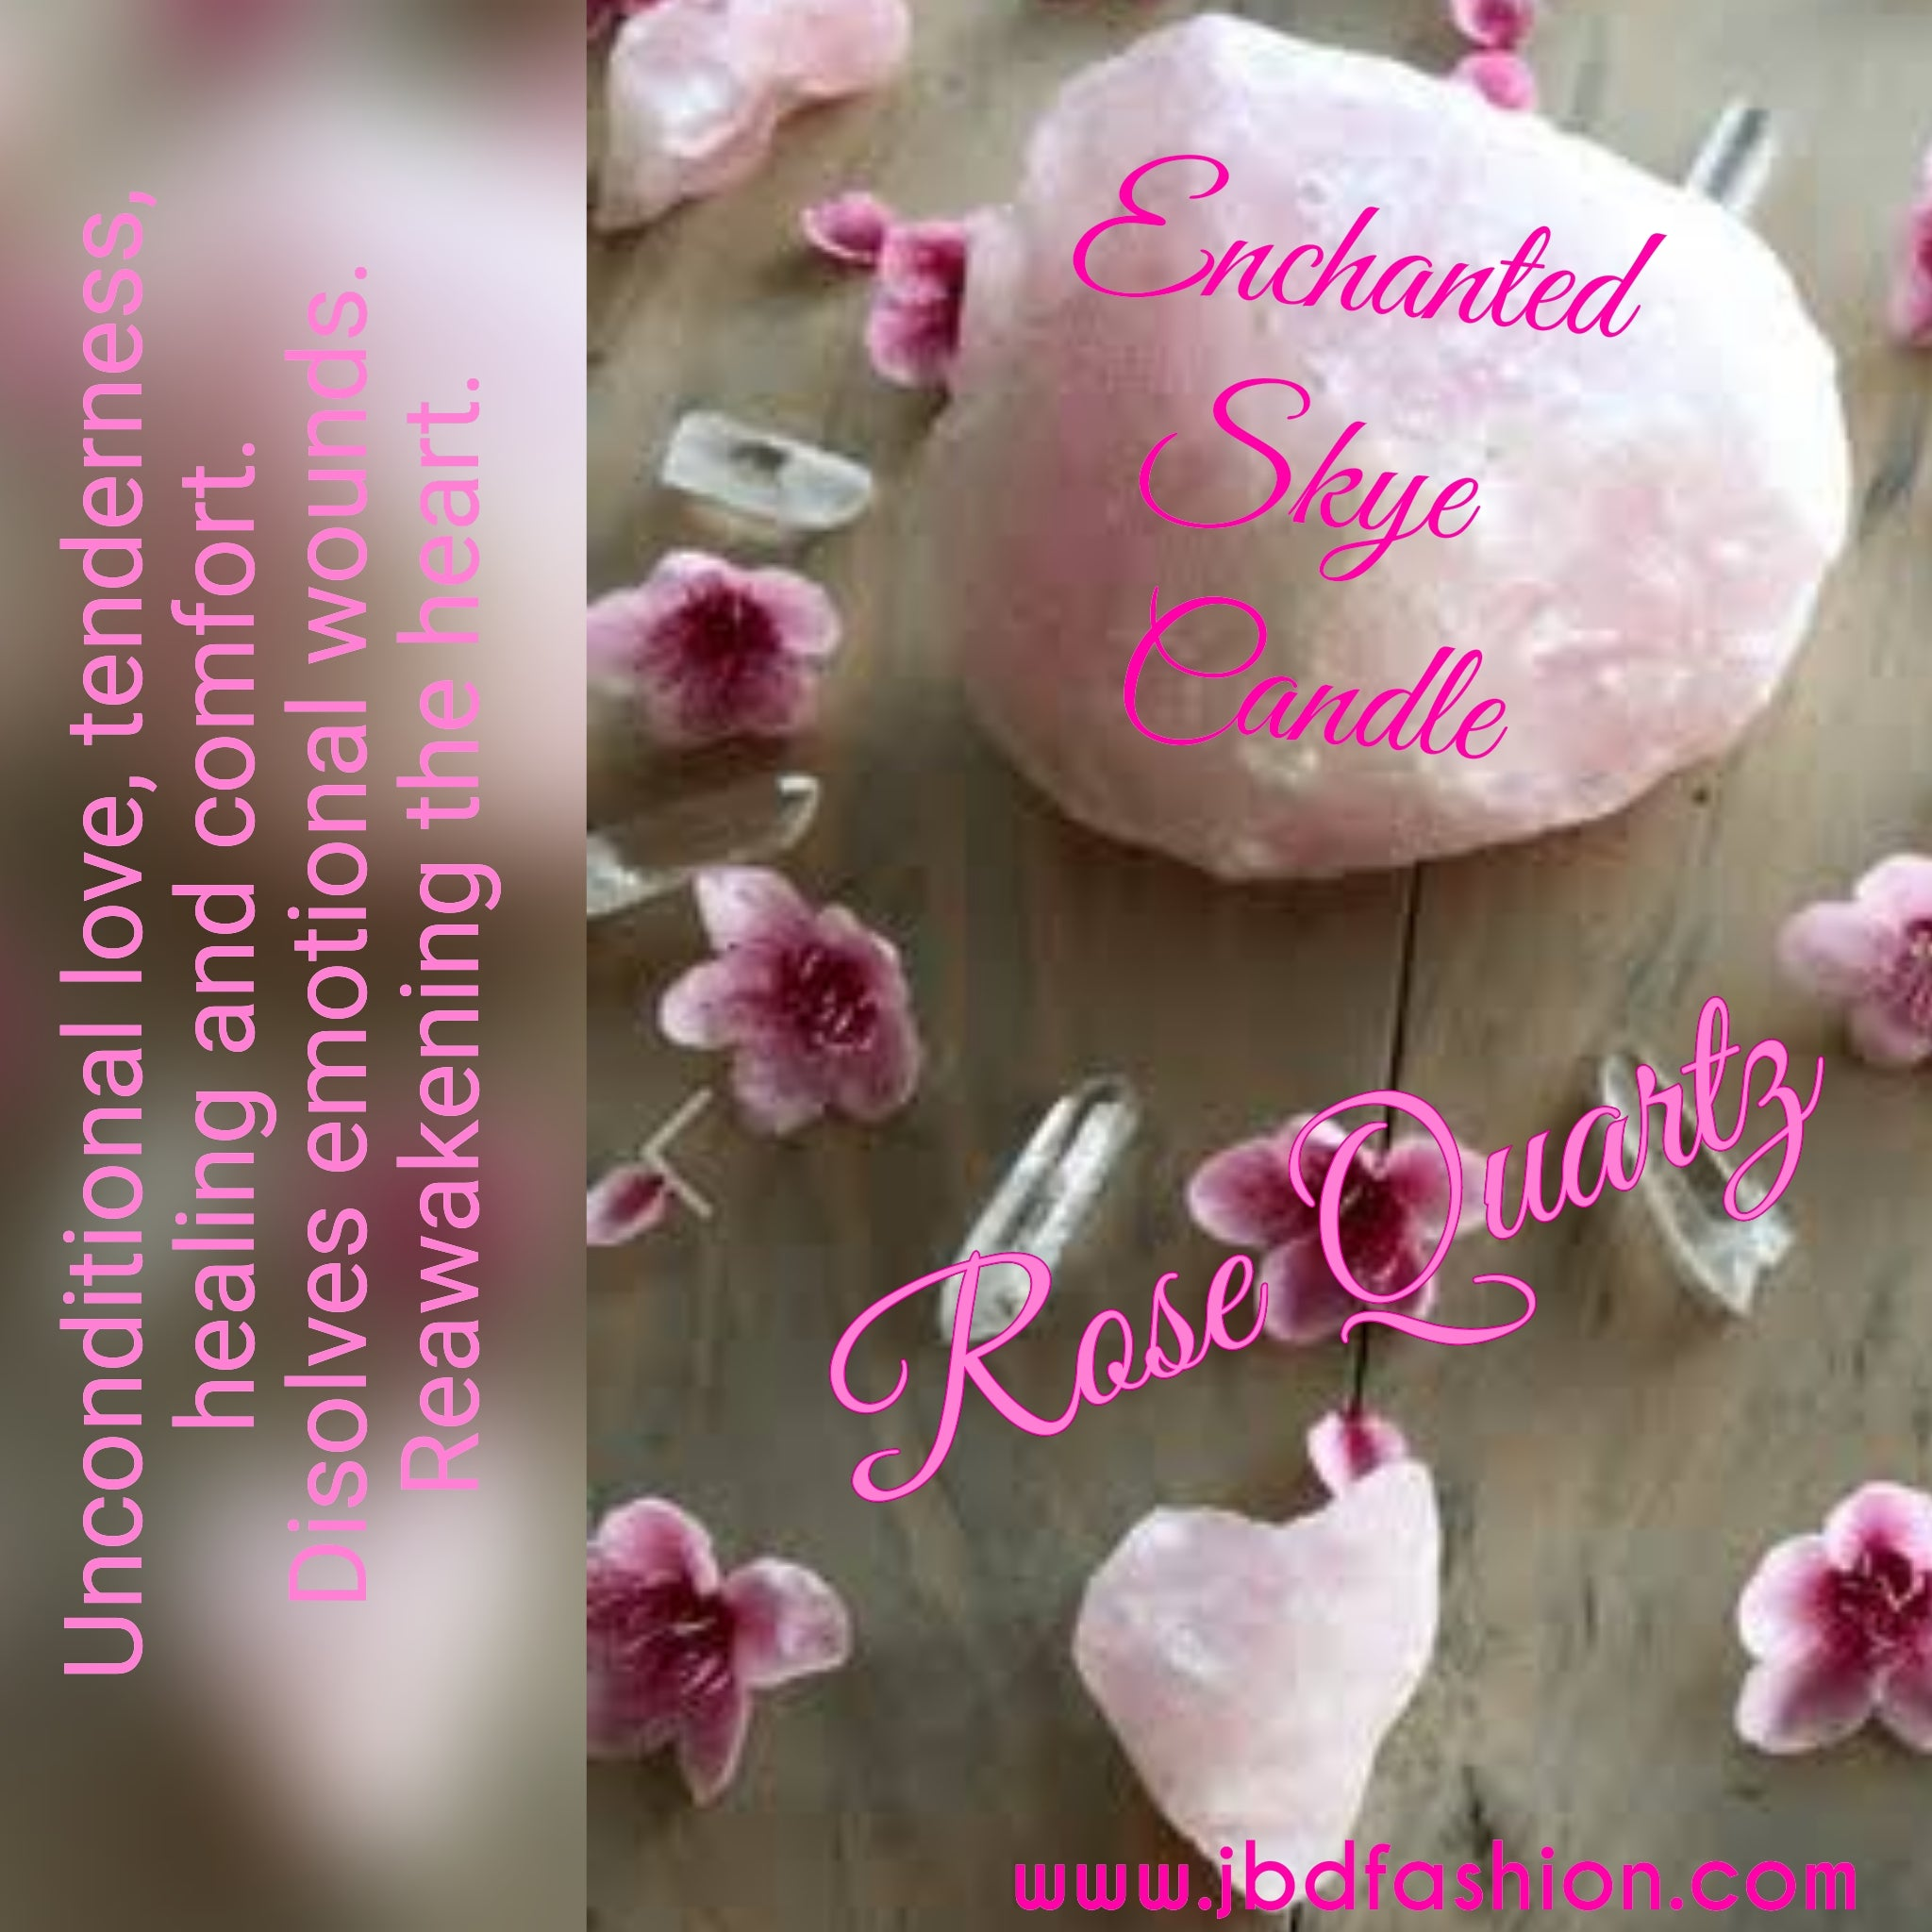 Enchanted Skye Candle - Rose Quartz - JBD